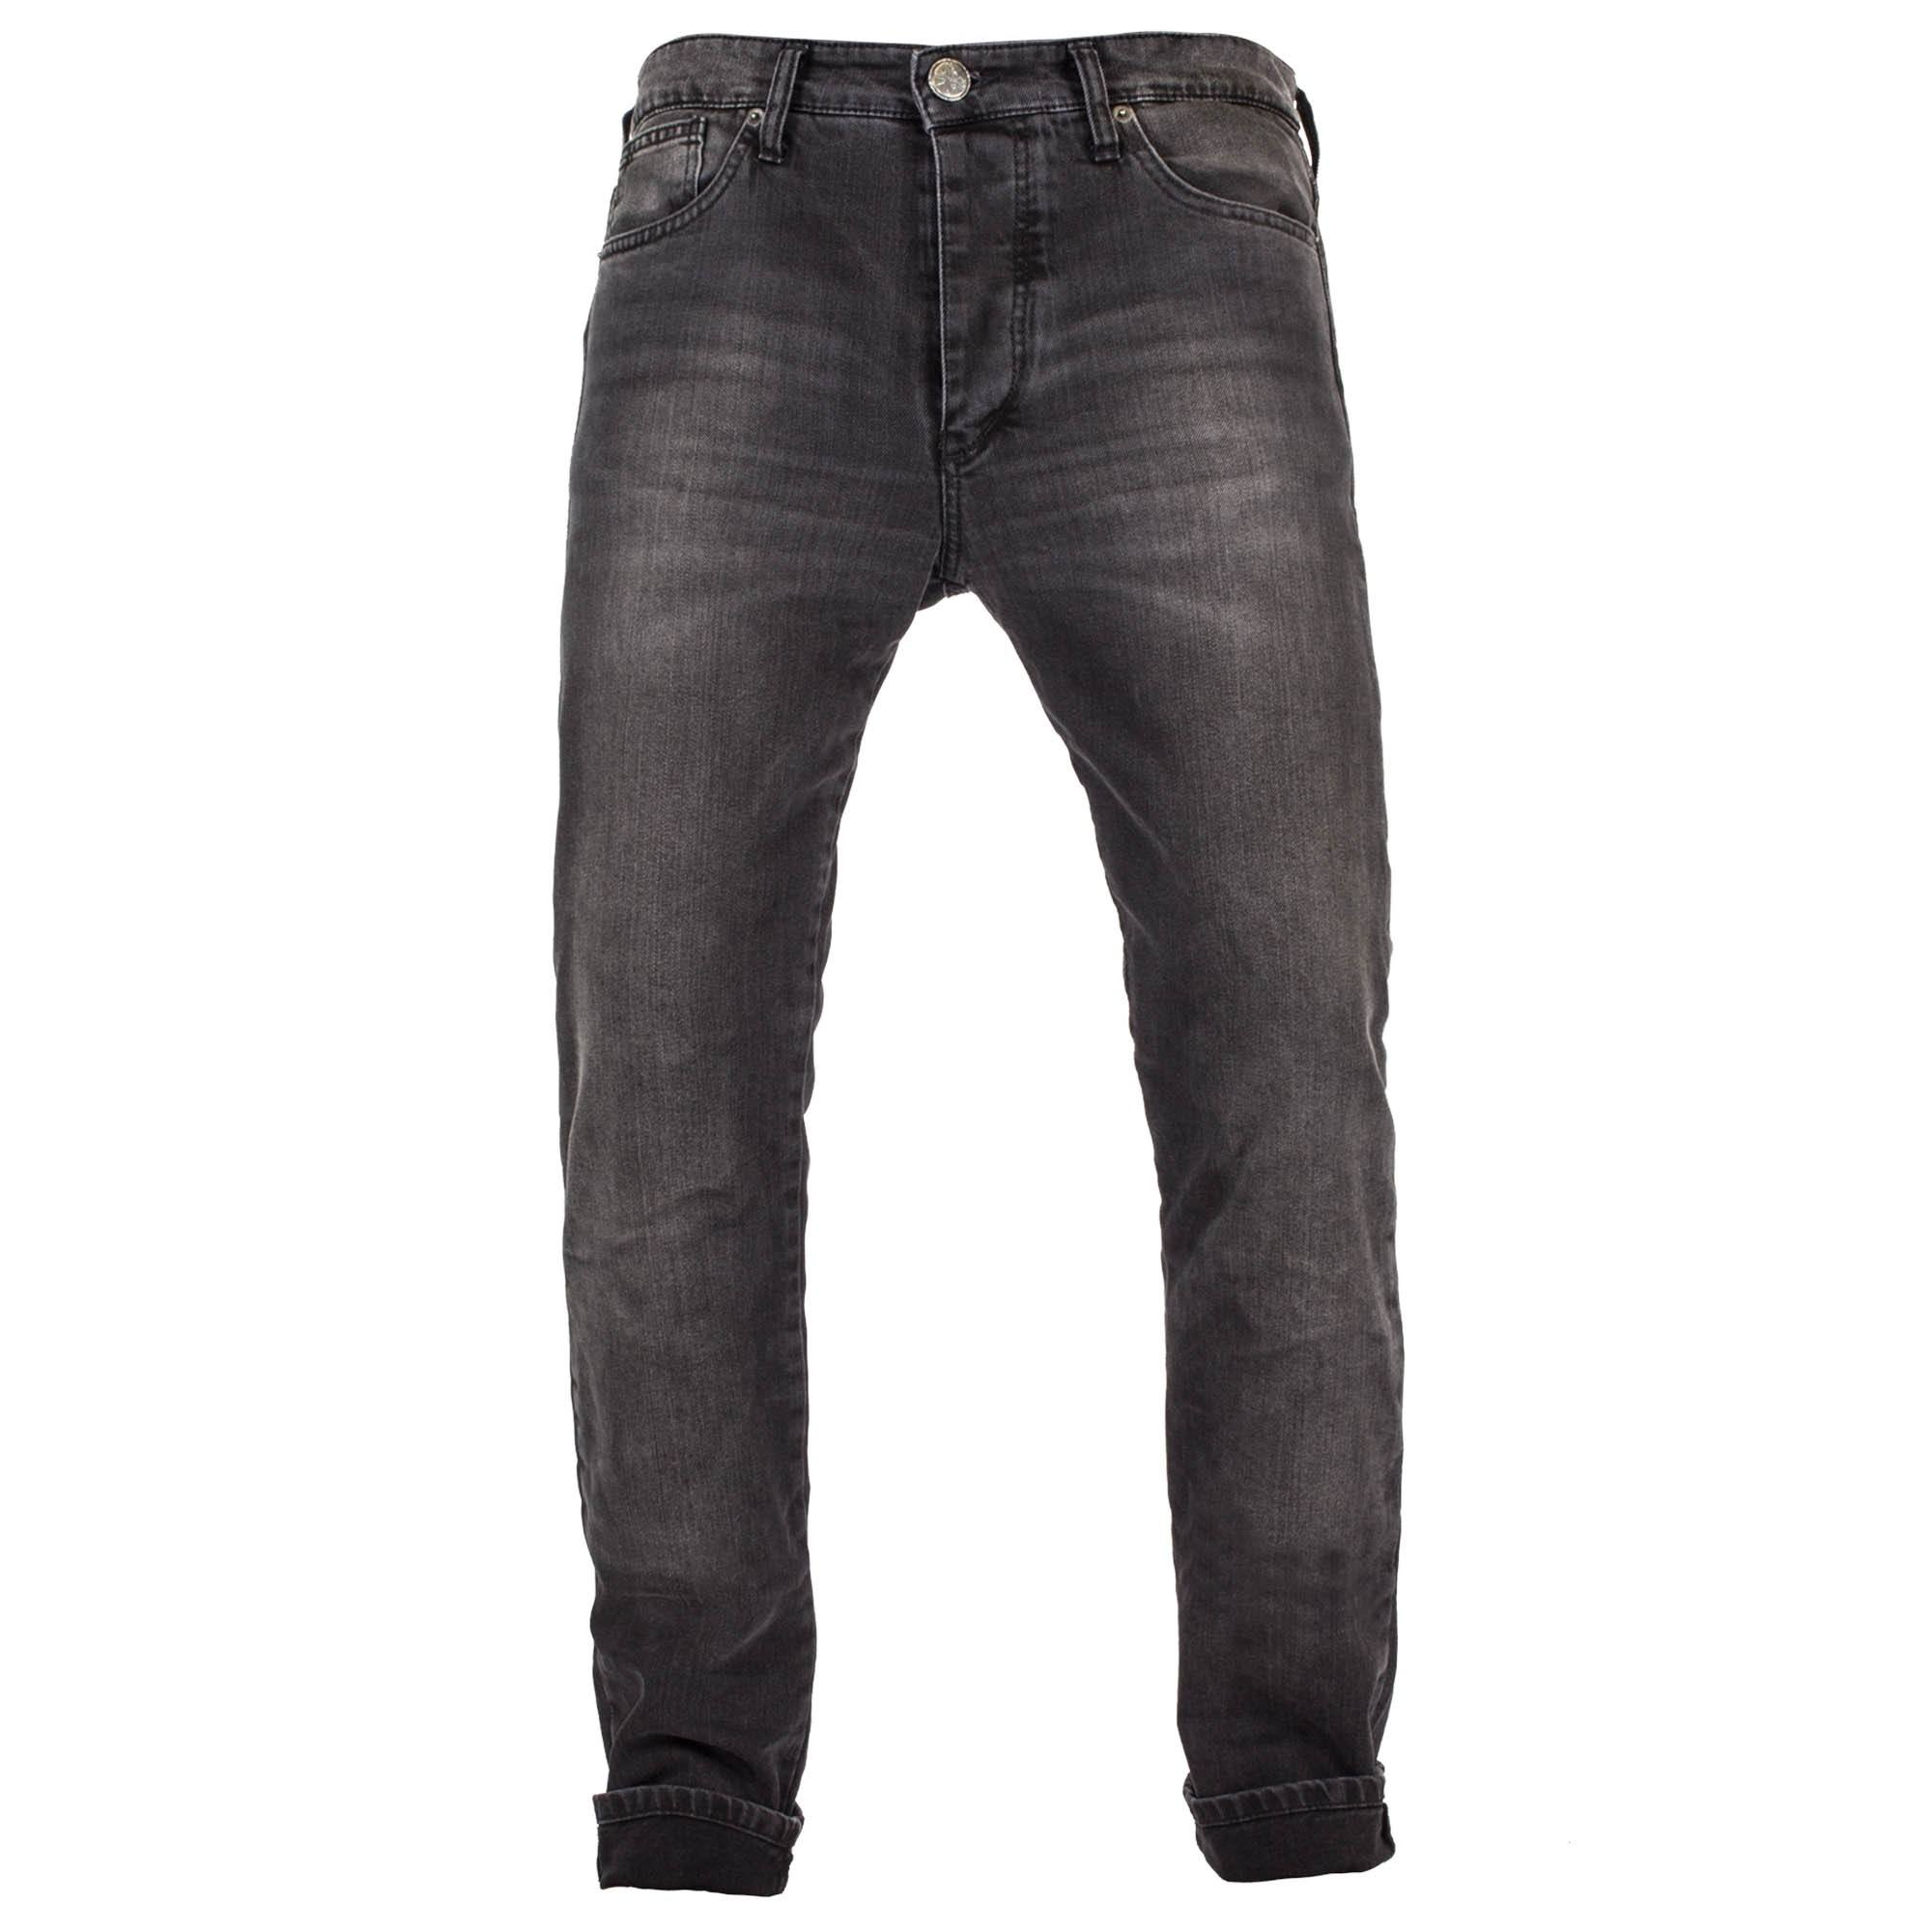 Hot sale stylish stretchy nature denim slim fit jeans